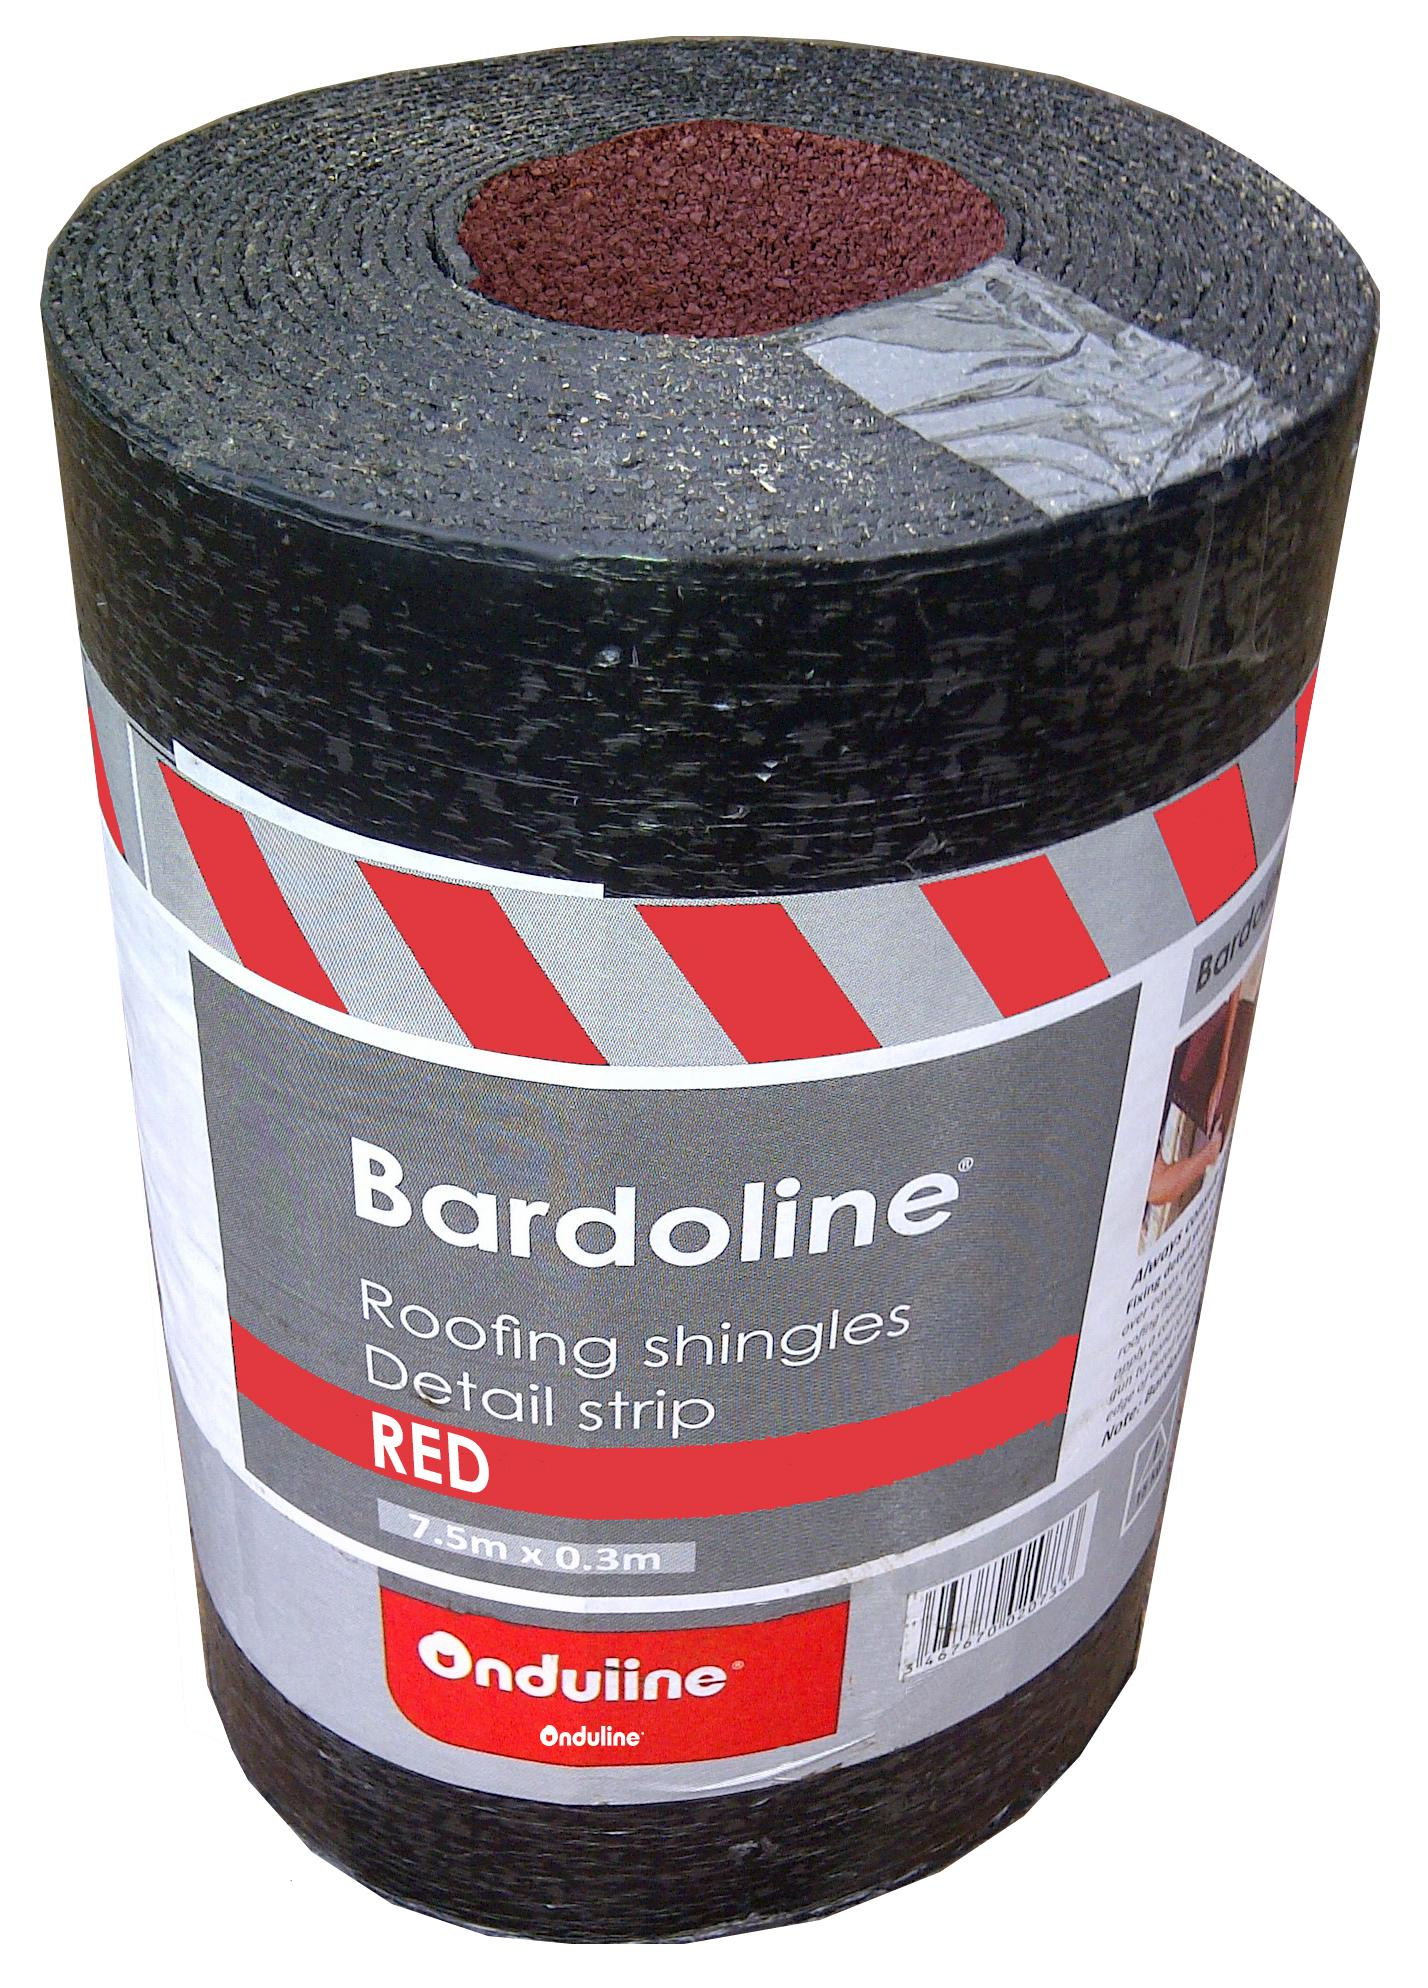 Bardoline Roofing Shingles Detail Strip Roll Red